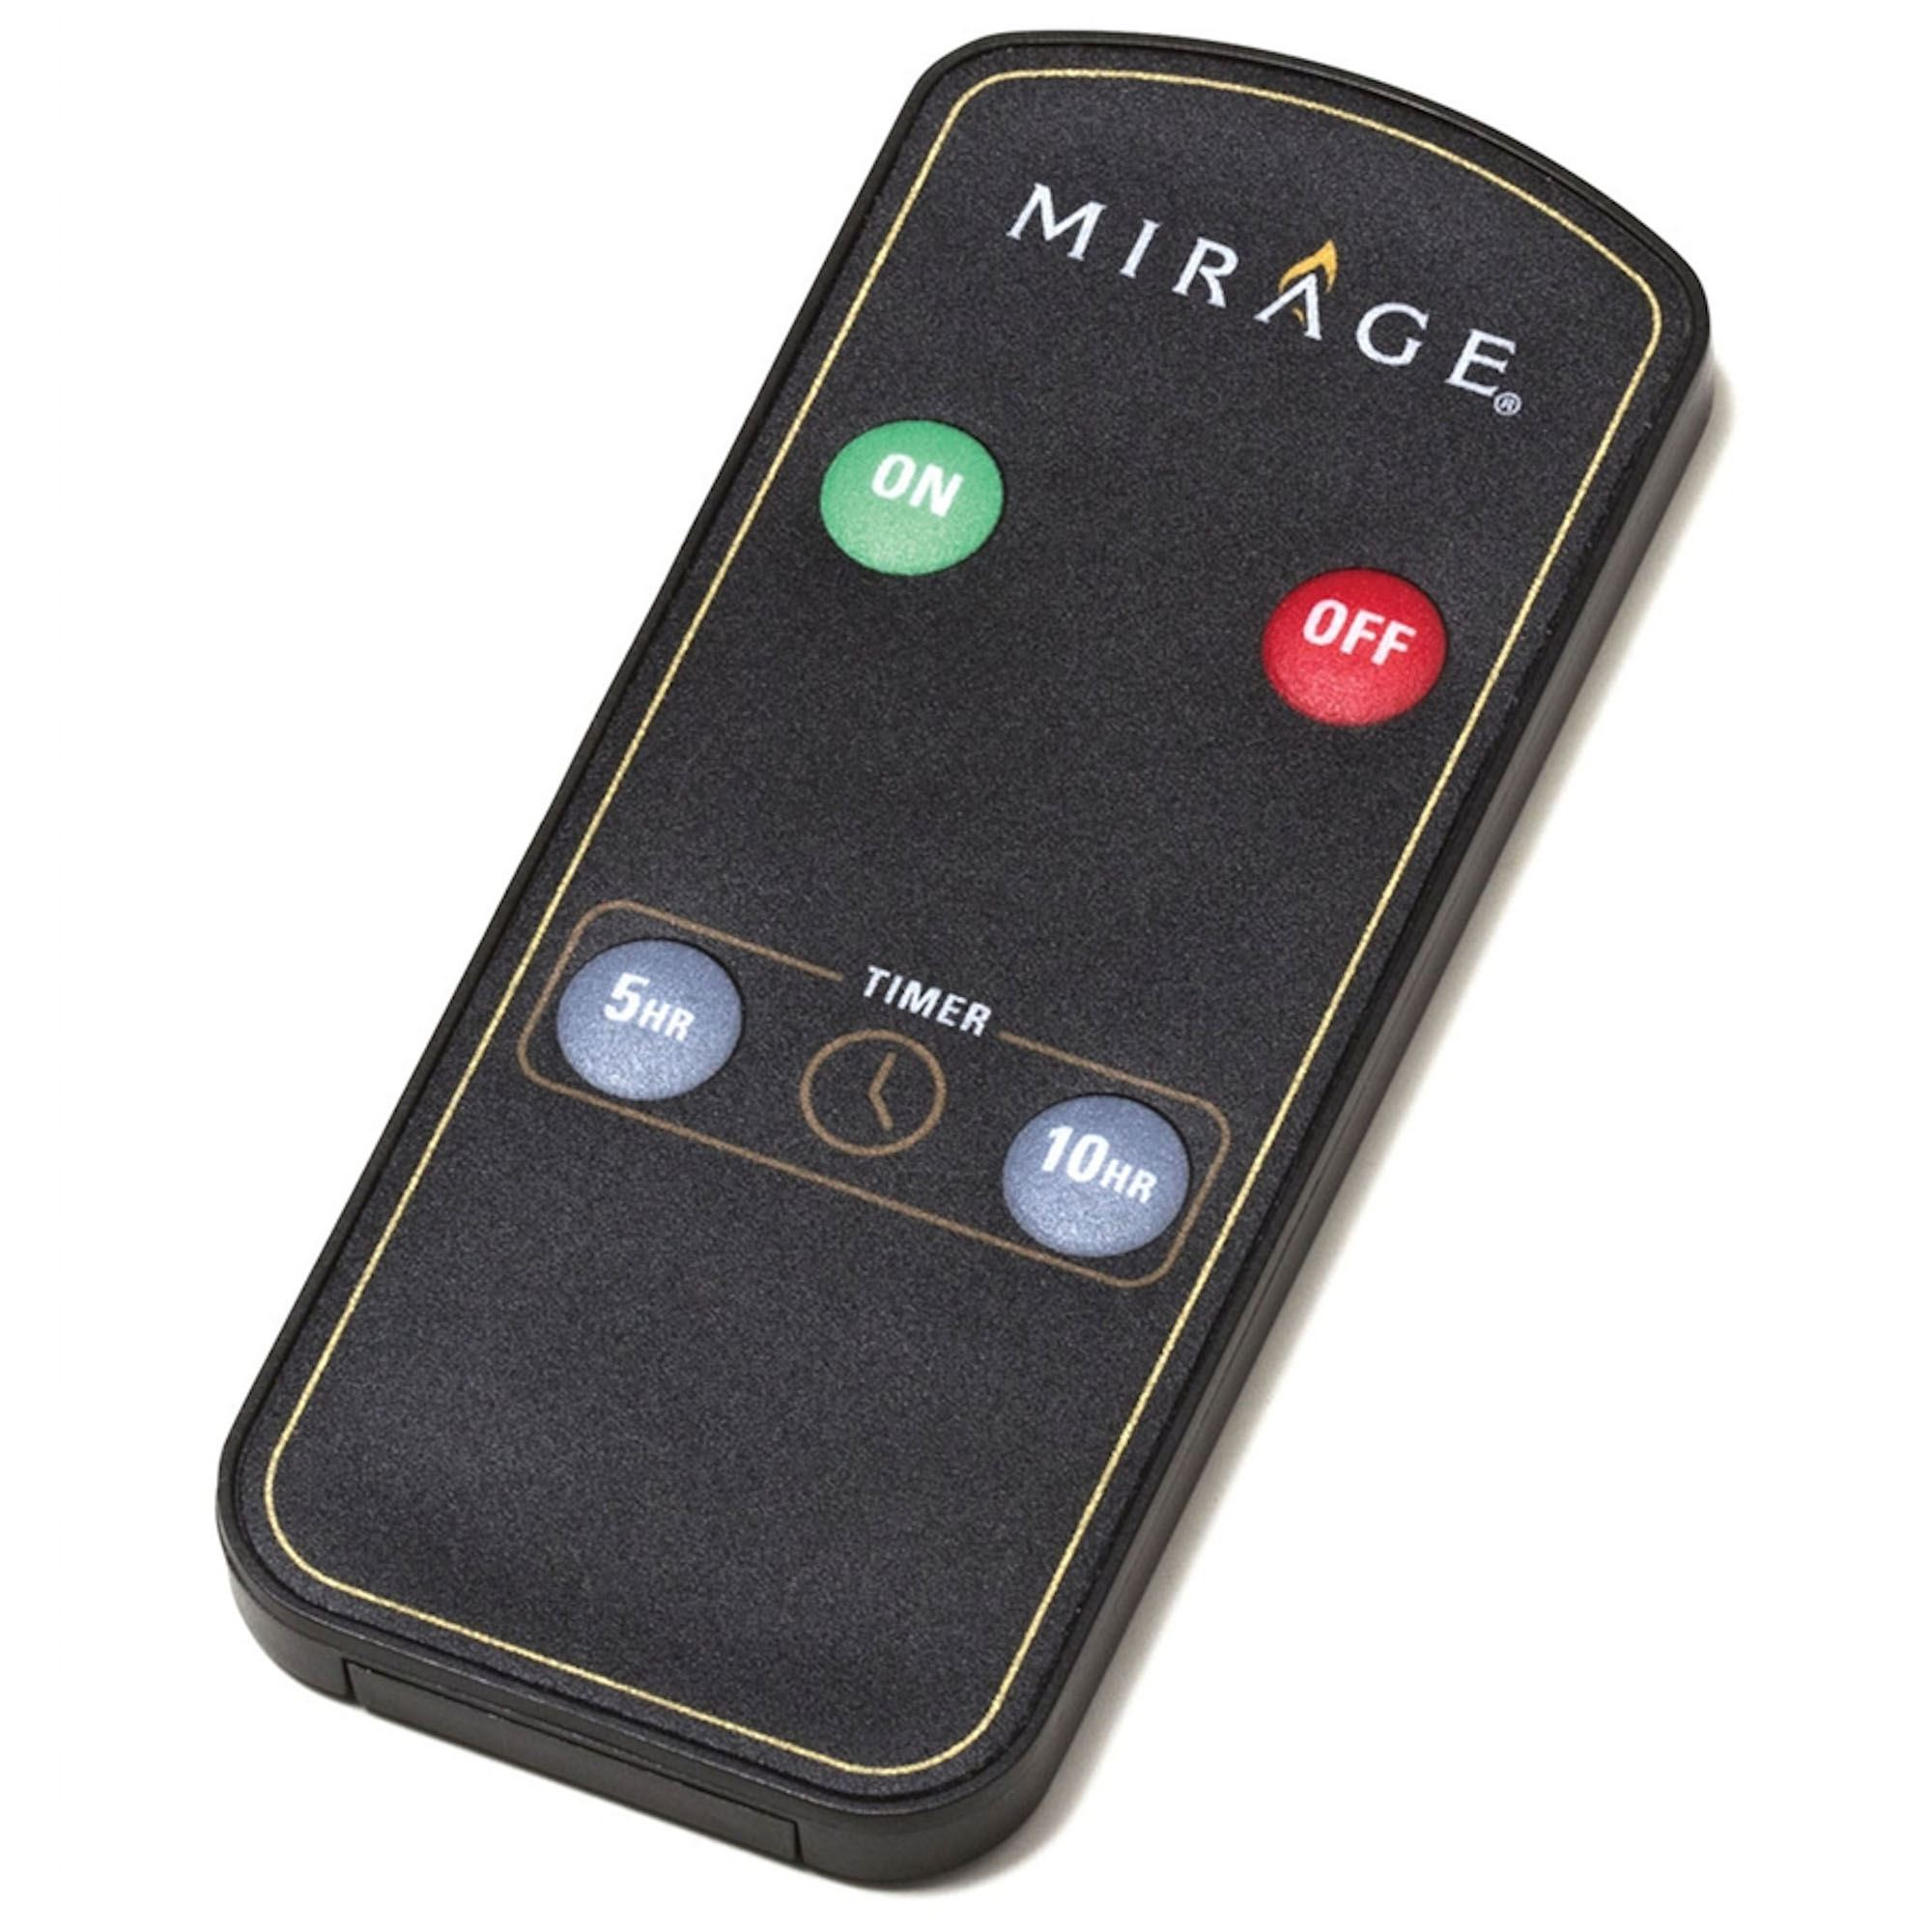 Mirage Candle Remote Control for select Mirage Flameless ...